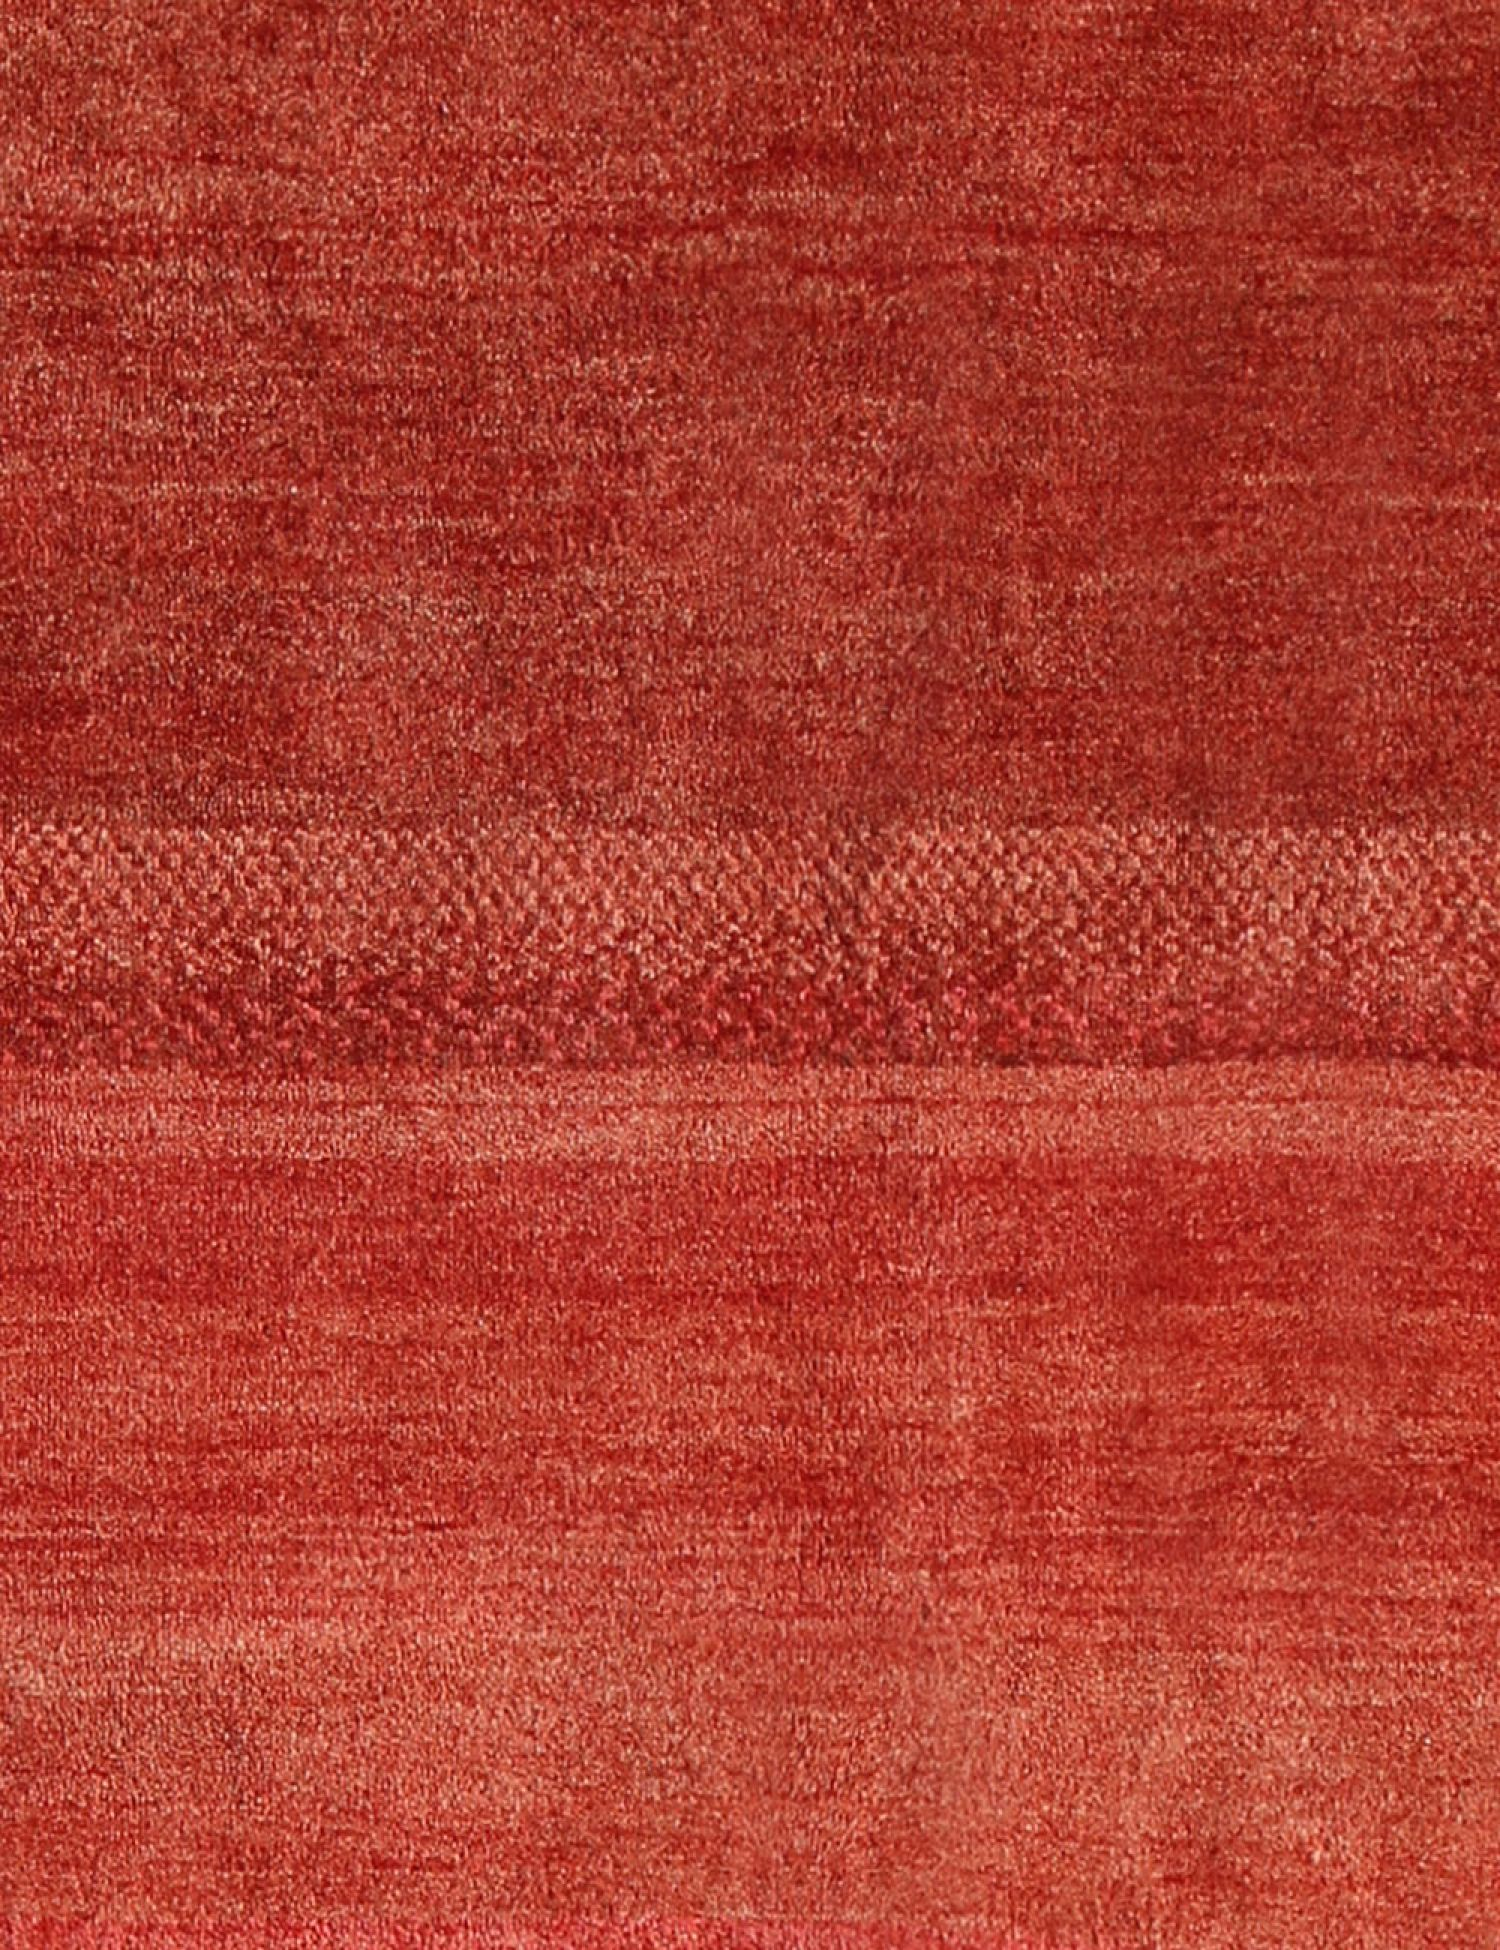 Modern carpets  red <br/>237 x 166 cm